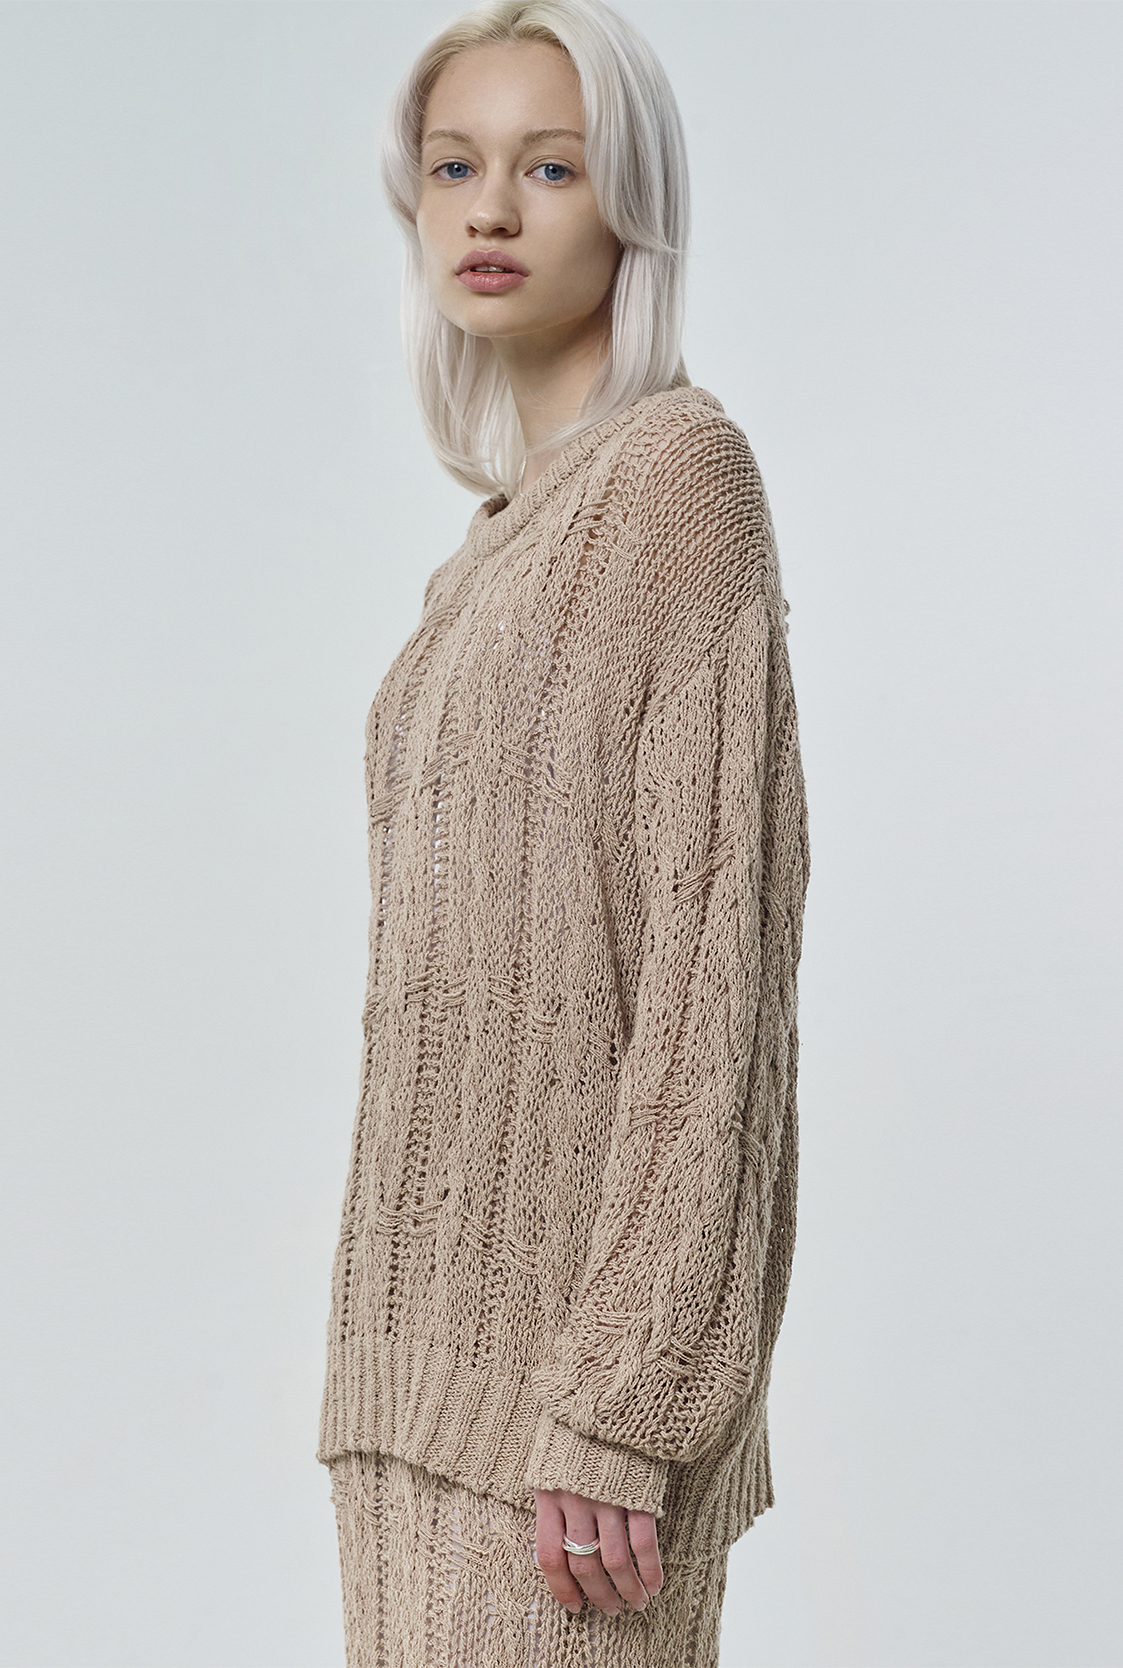 R SEE-THROUGHT CABLE KNIT TOP [2colors]